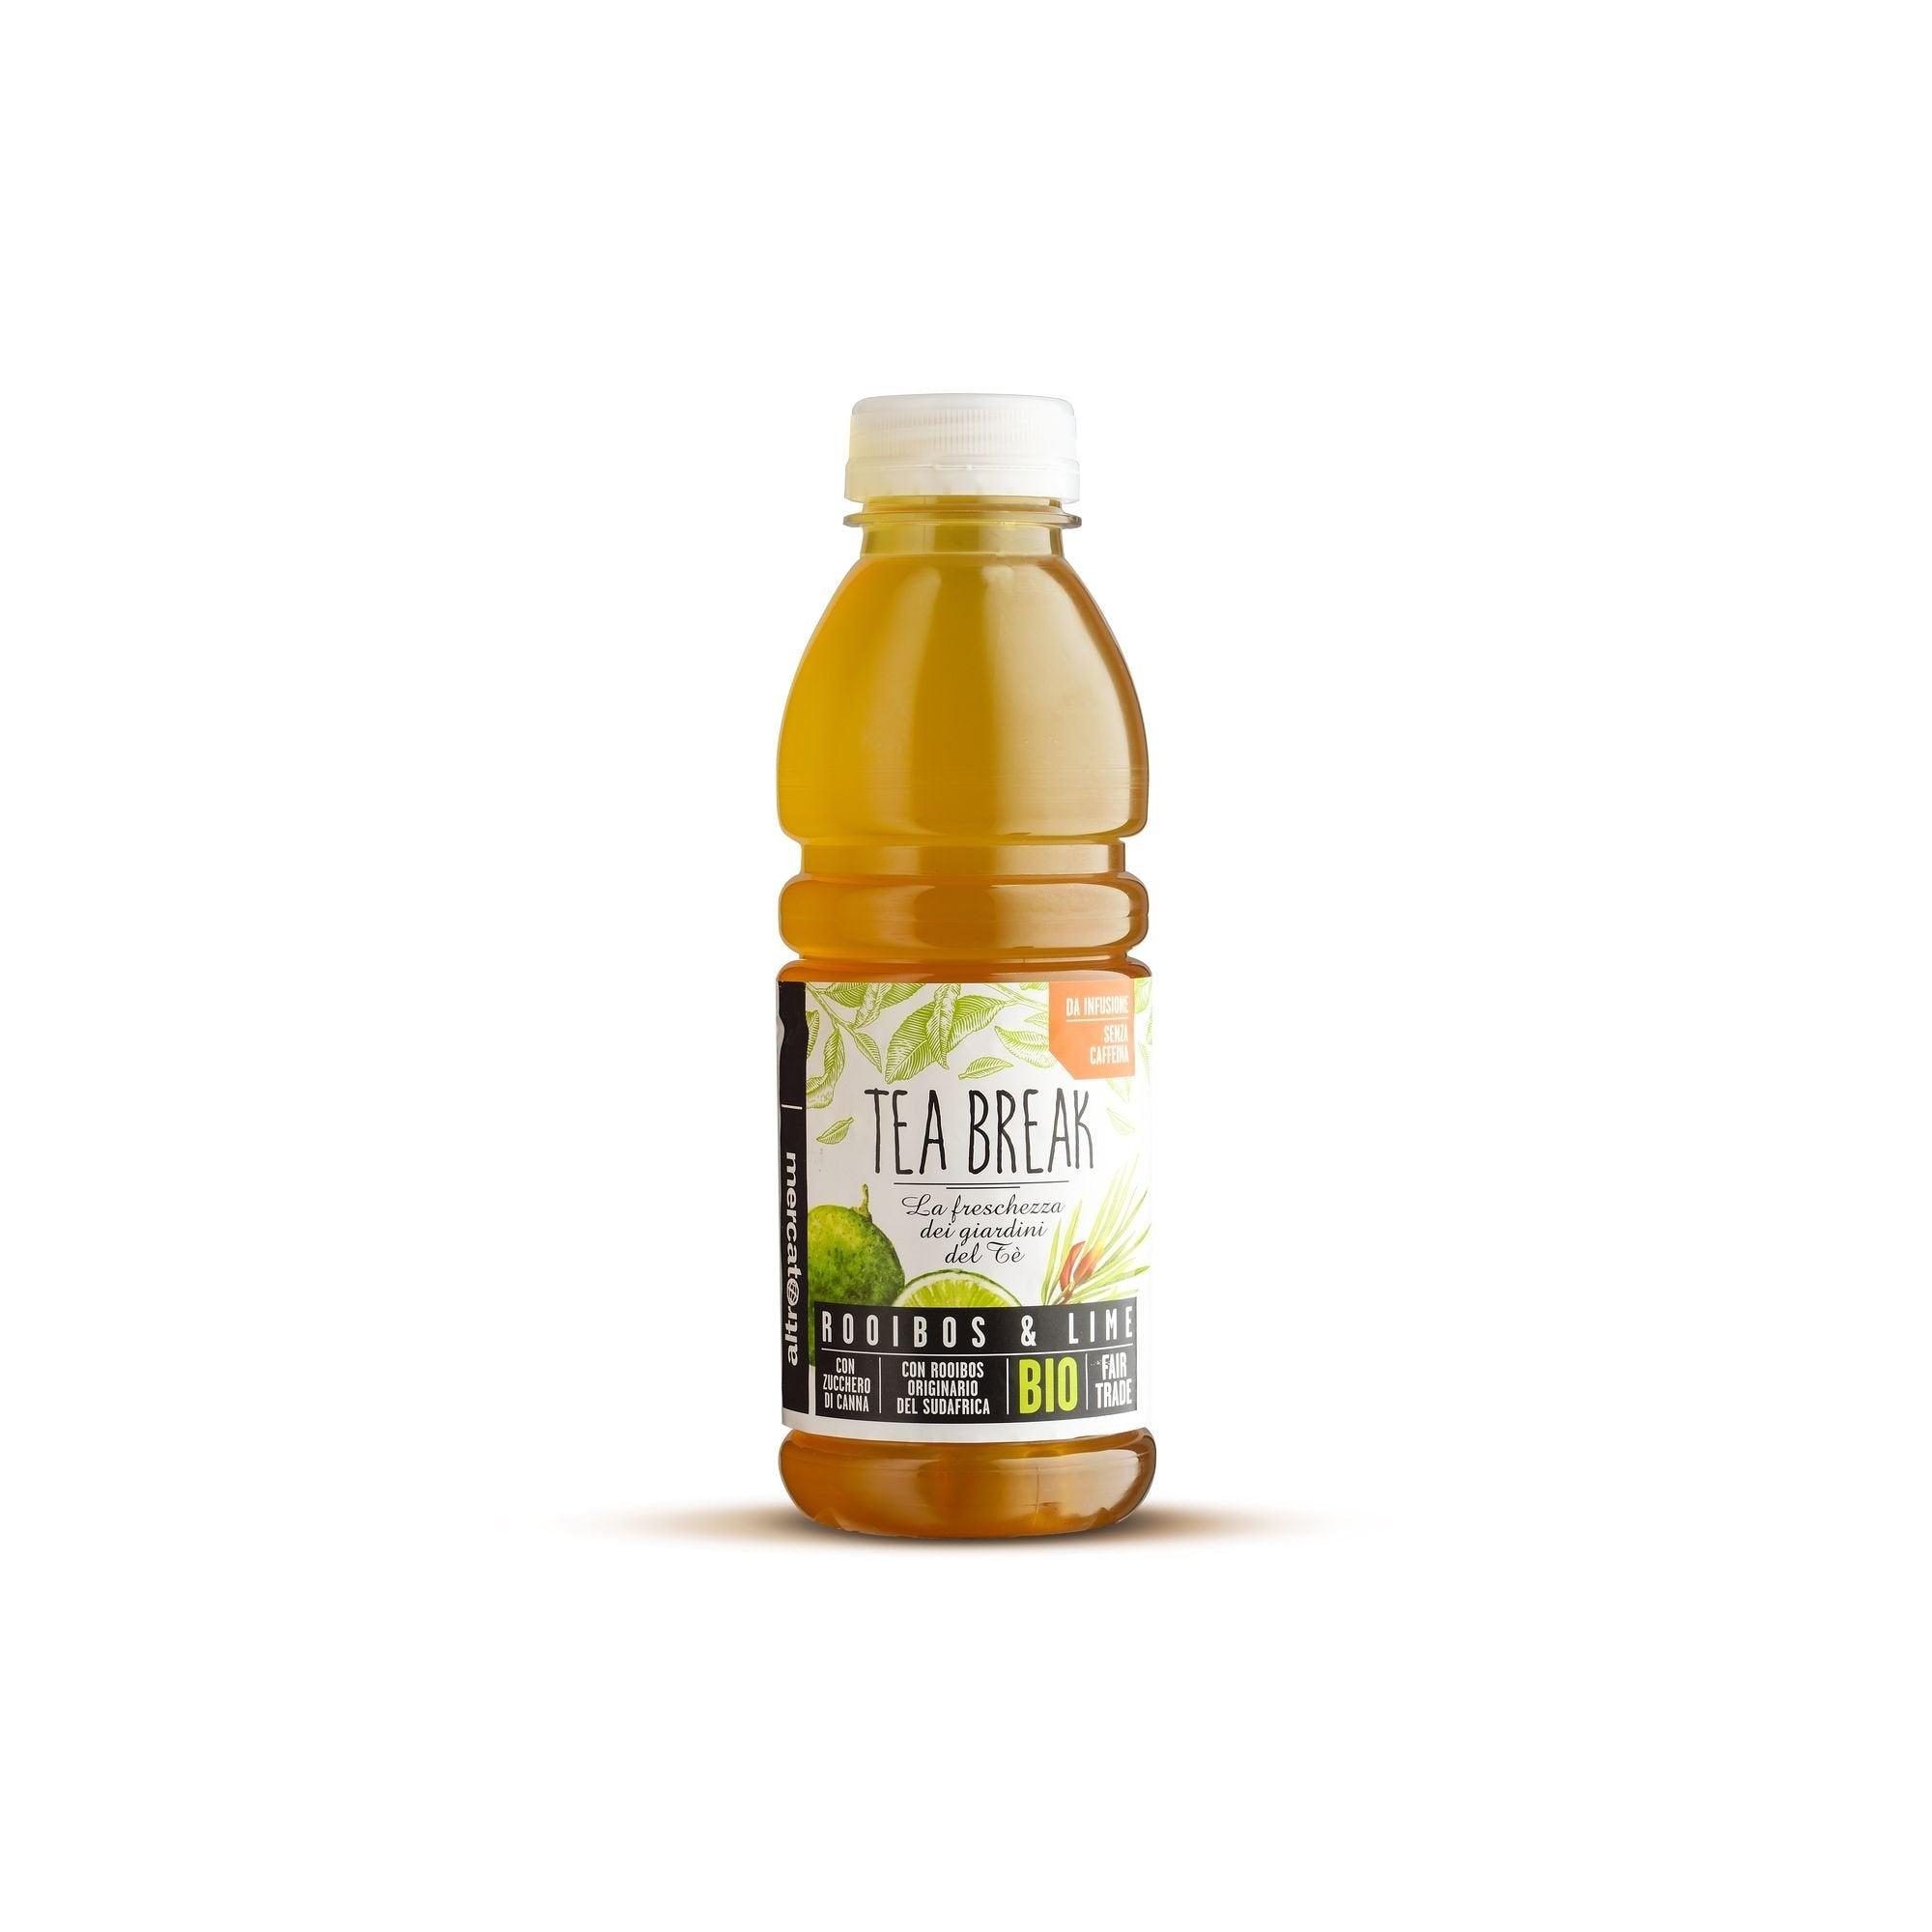 TÉ AL ROOIBOS E LIME TEA BREAK - BIO - 500 ml